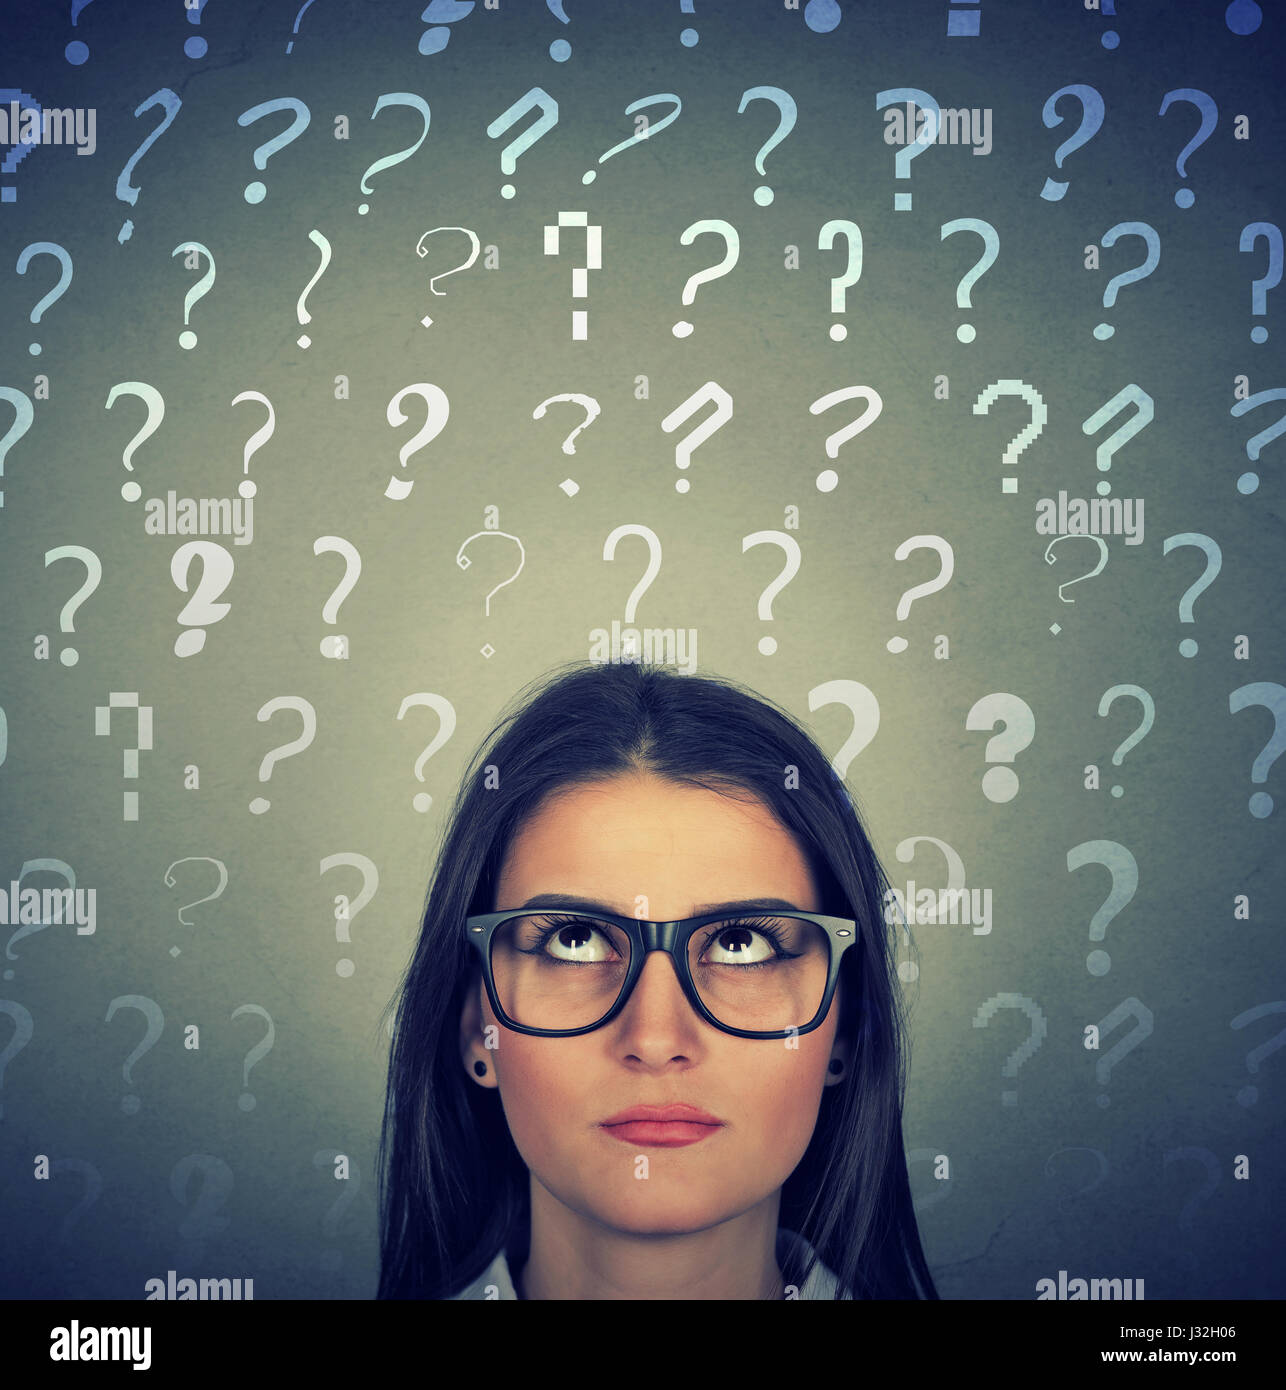 Upset thinking business woman with glasses looking up many question marks above head isolated on gray wall background - Stock Image